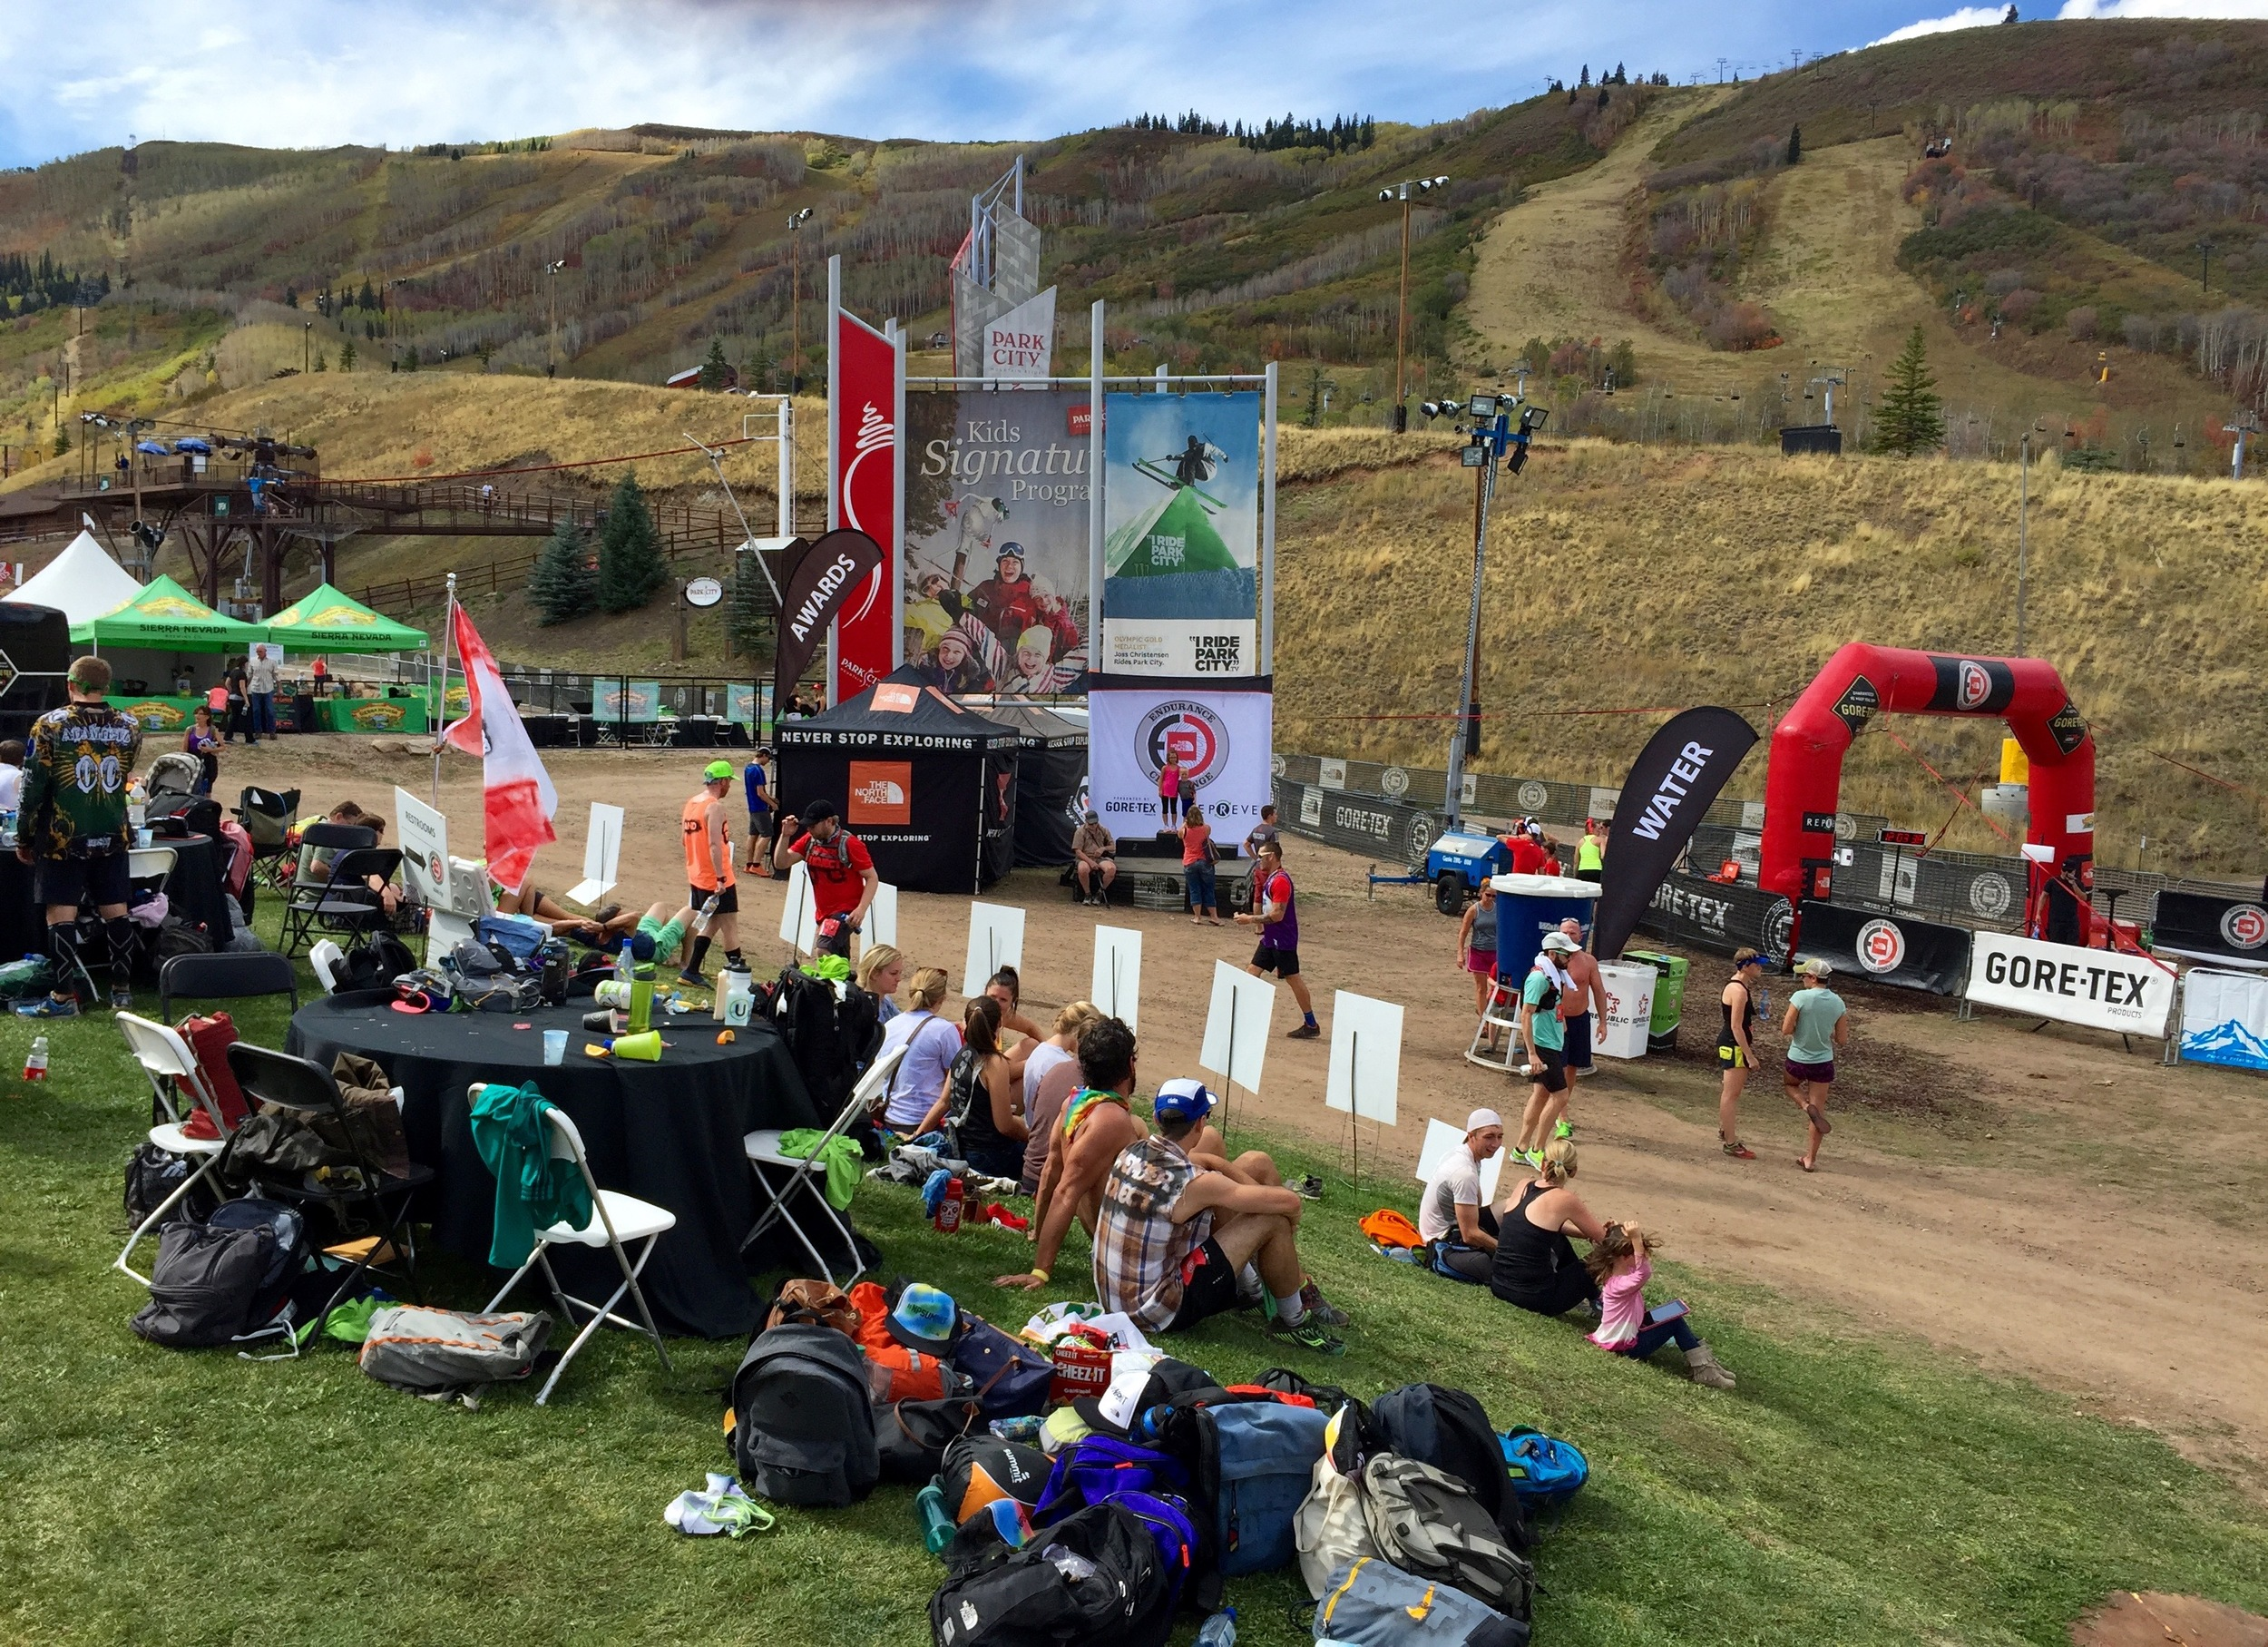 The starting area for the North Face Endurance Challenge Series - Utah.